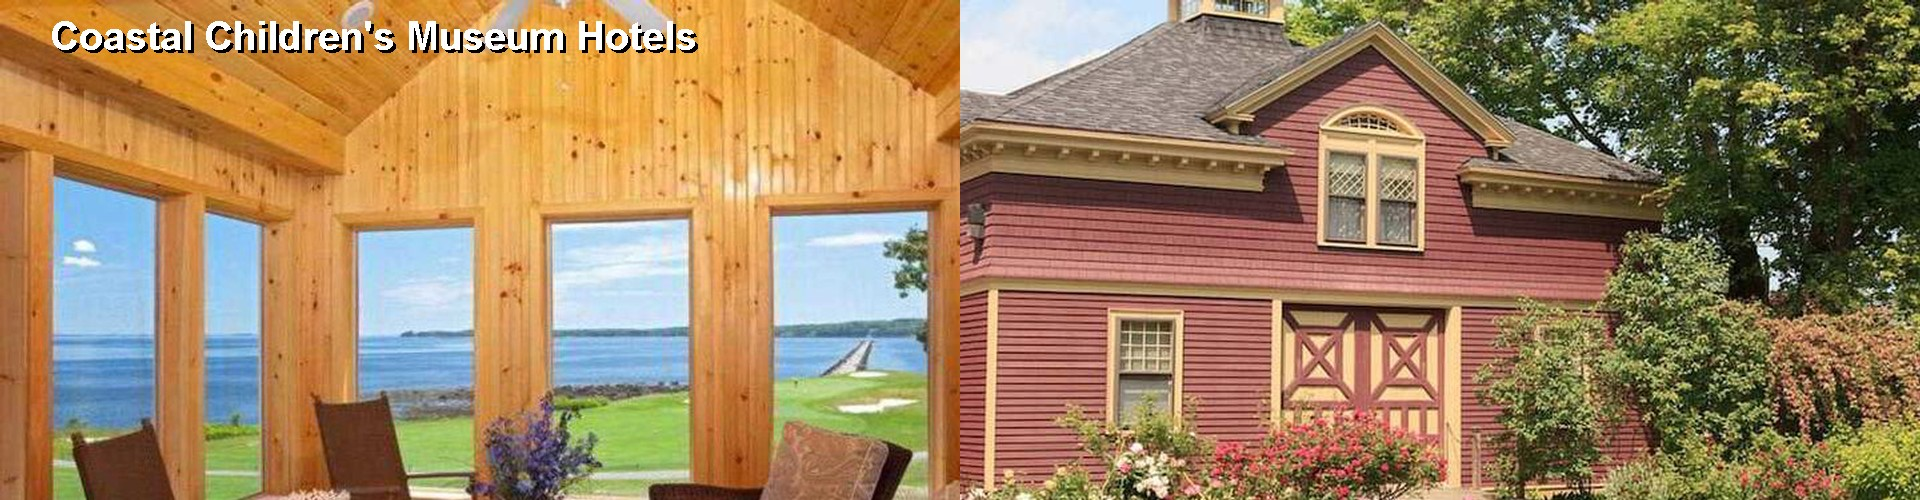 Hotels Near Coastal Childrens Museum In Rockland ME - Best car museums in us